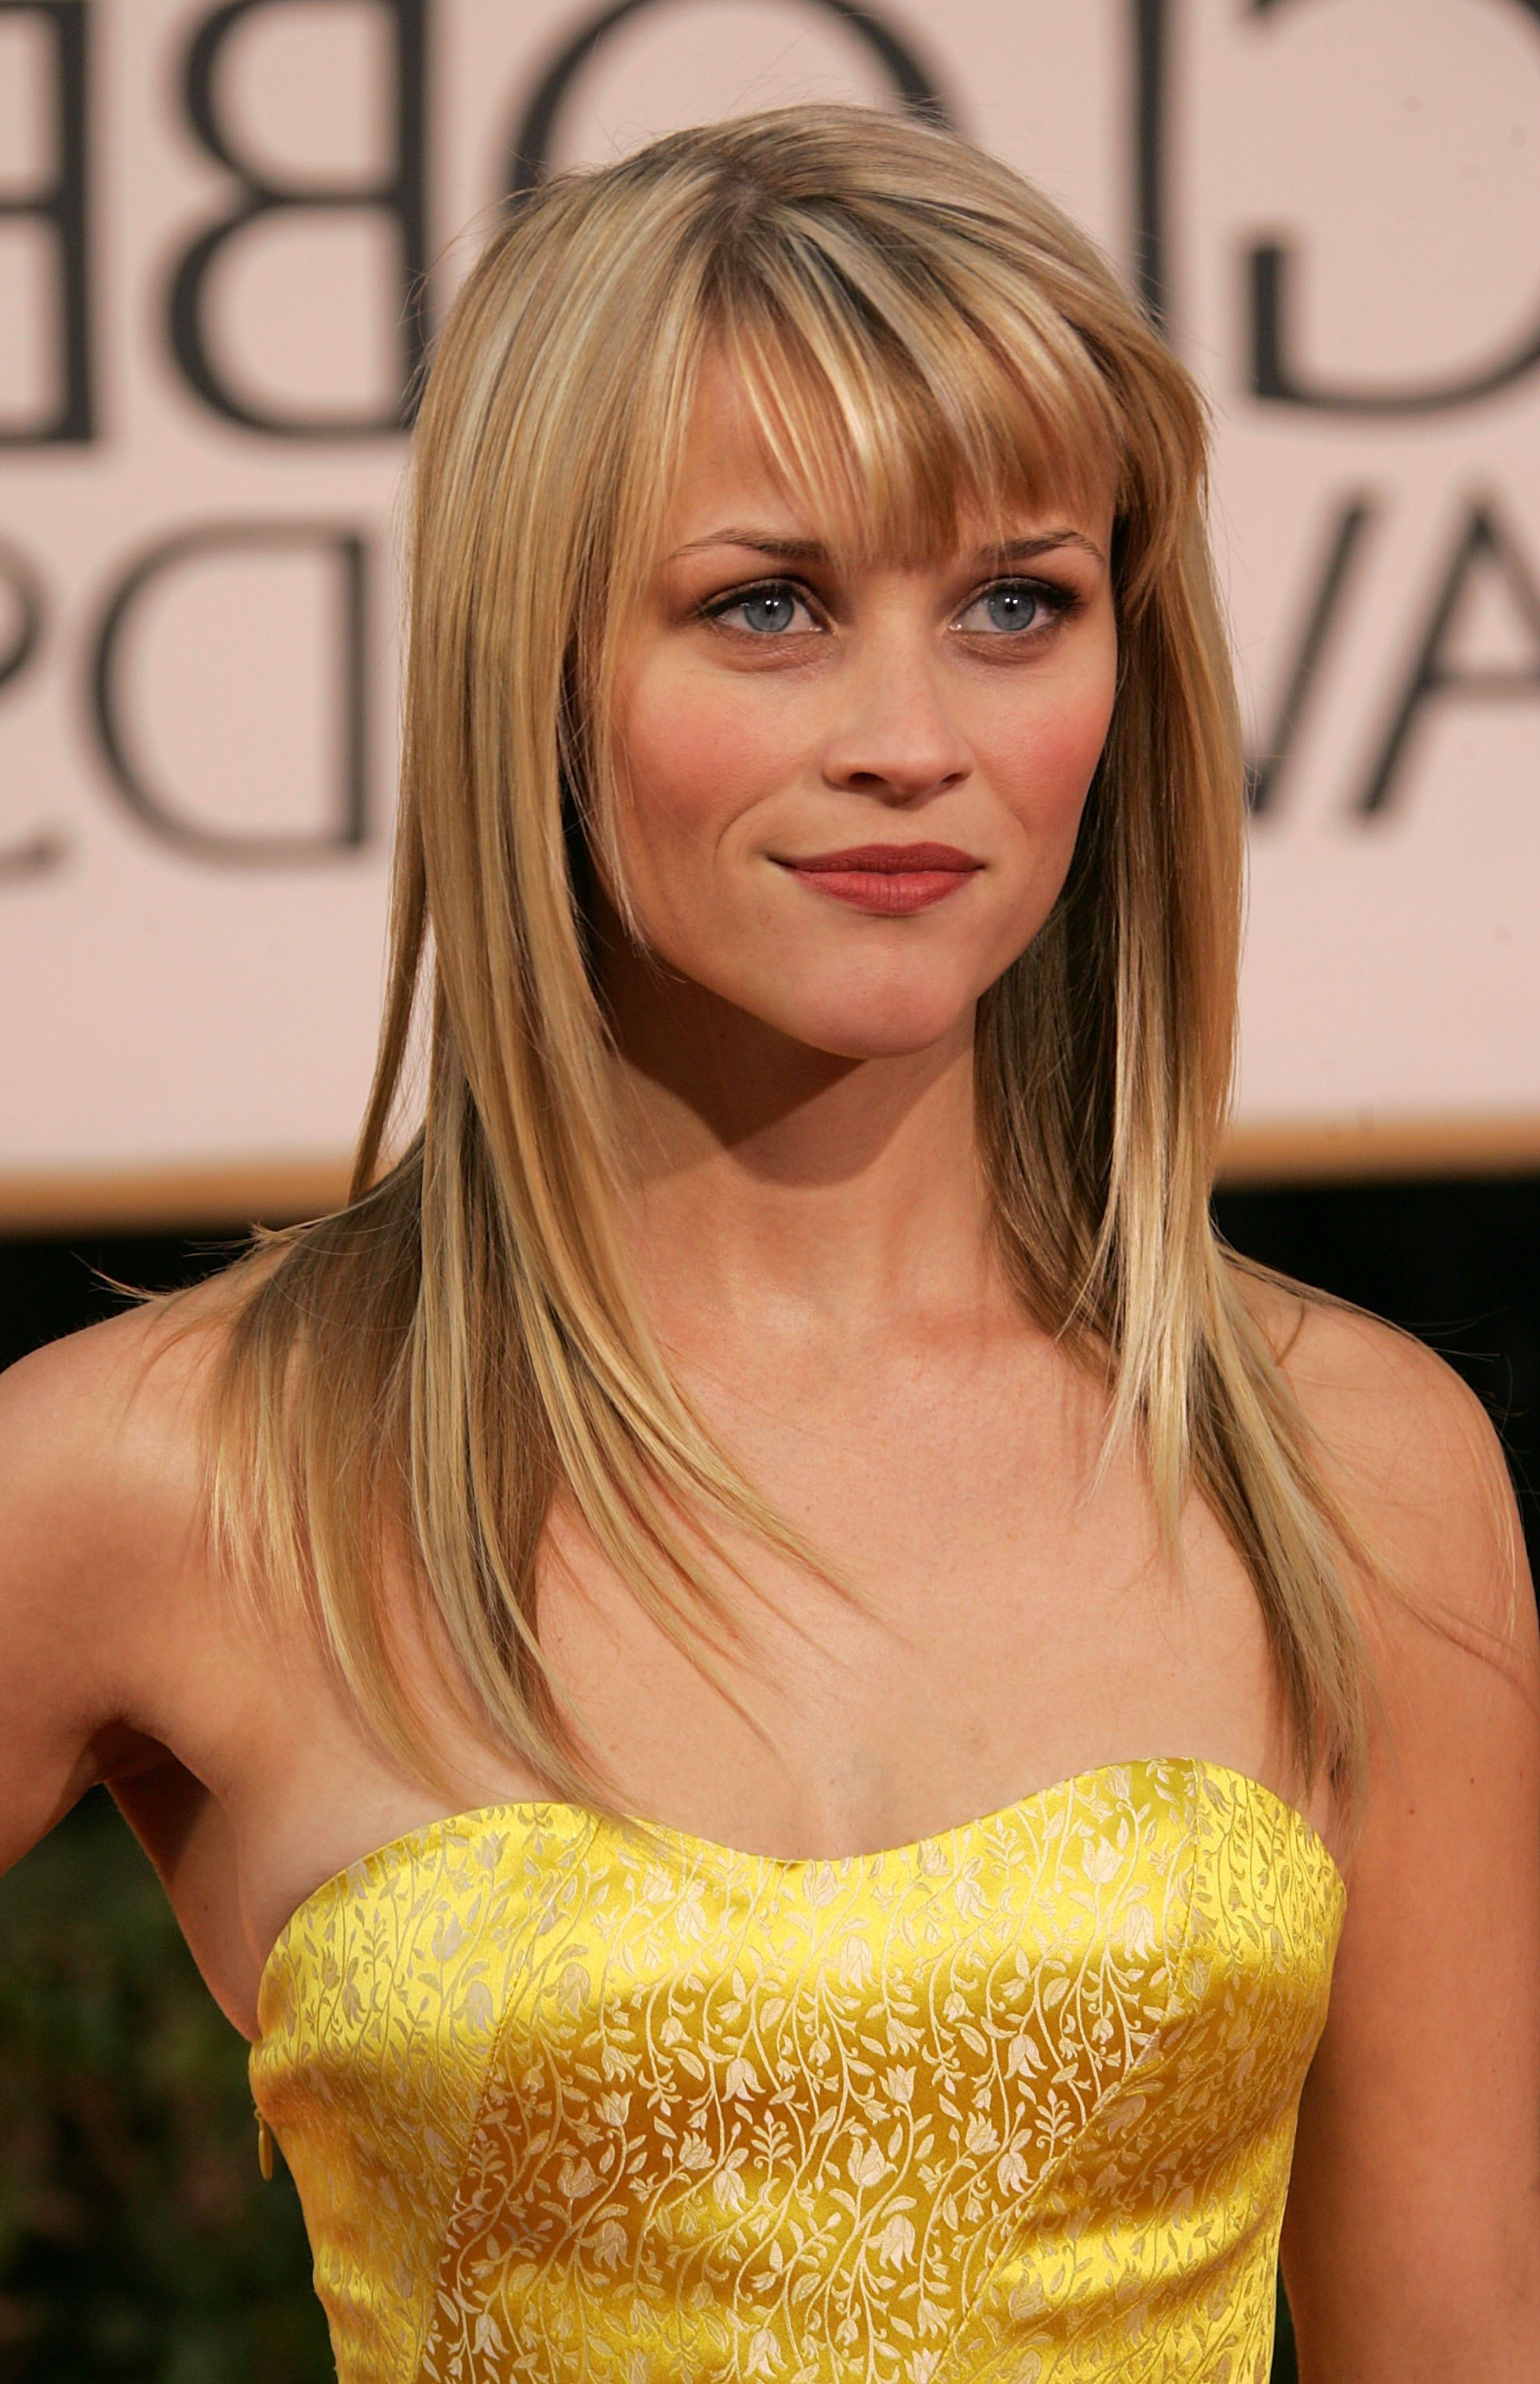 19 Side Fringe Hairstyles For 2019 – Celebrity Inspiration Pertaining To Most Recent Medium Haircuts With Side Fringe (Gallery 4 of 20)